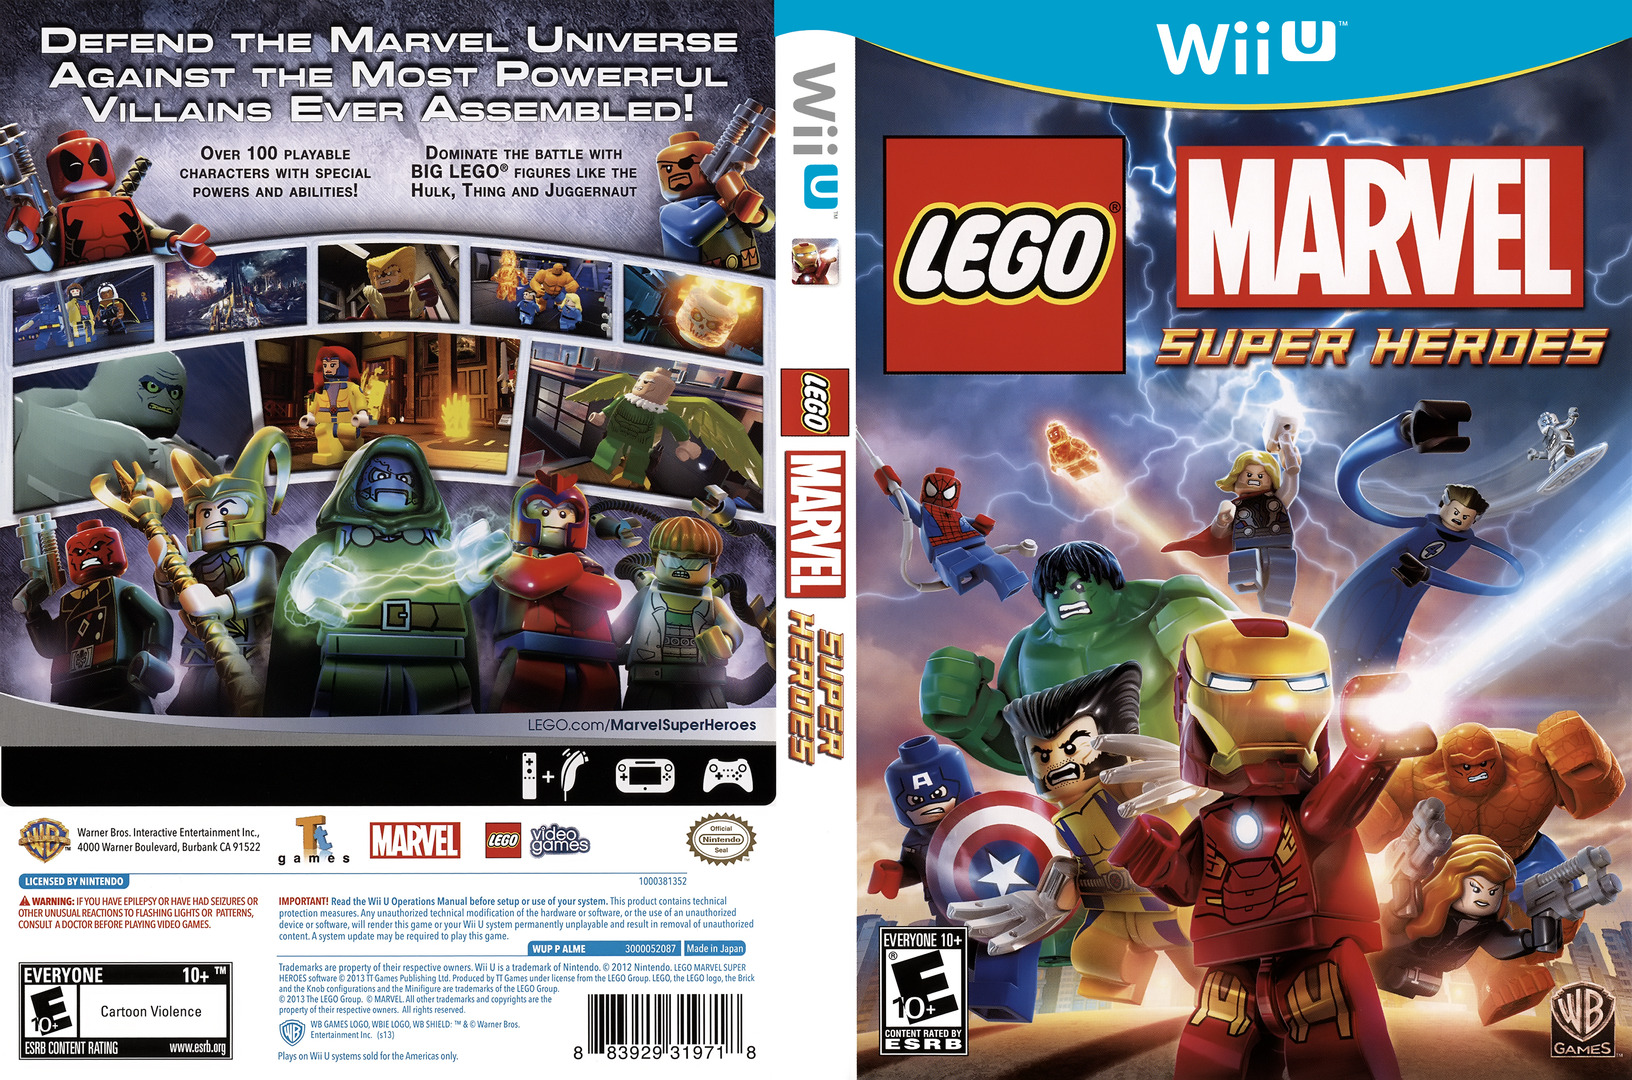 Lego marvel superheroes video game wii u - Toltec scenic